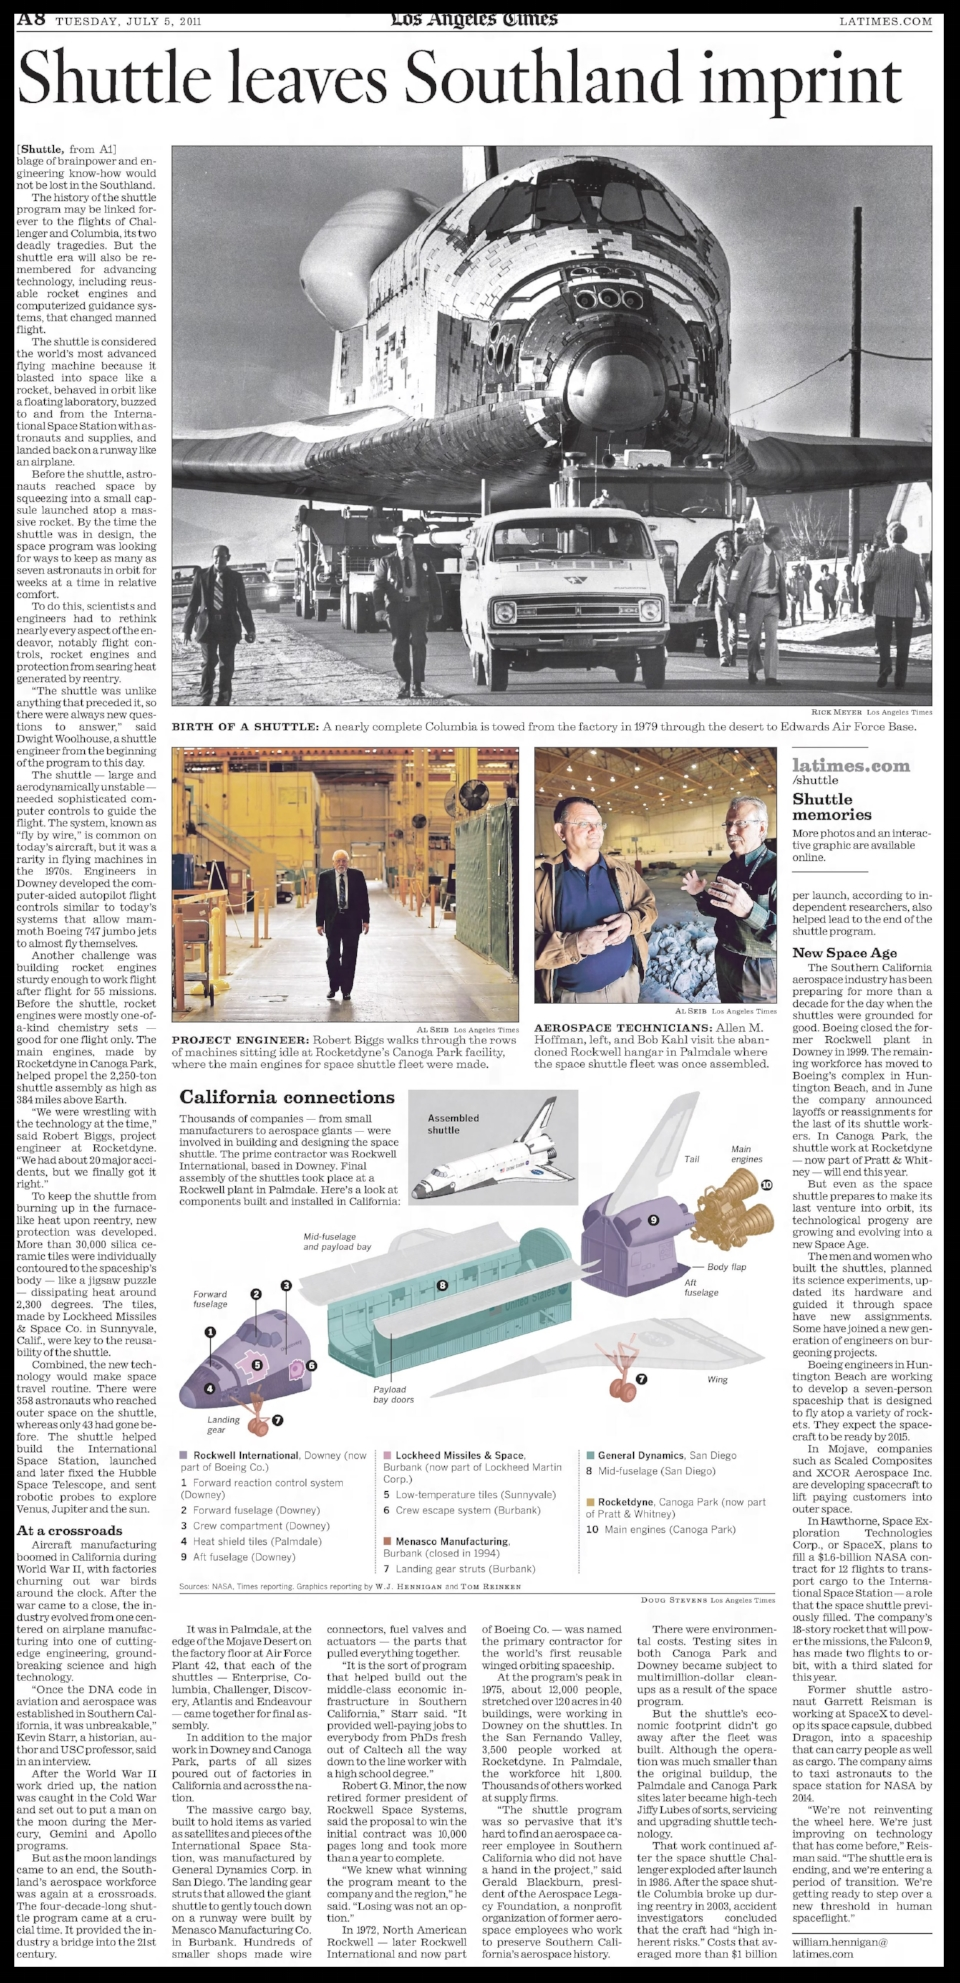 """Shuttle Leaves Southland Imprint"""" . The Los Angeles Times Tuesday July 5, 2011."""